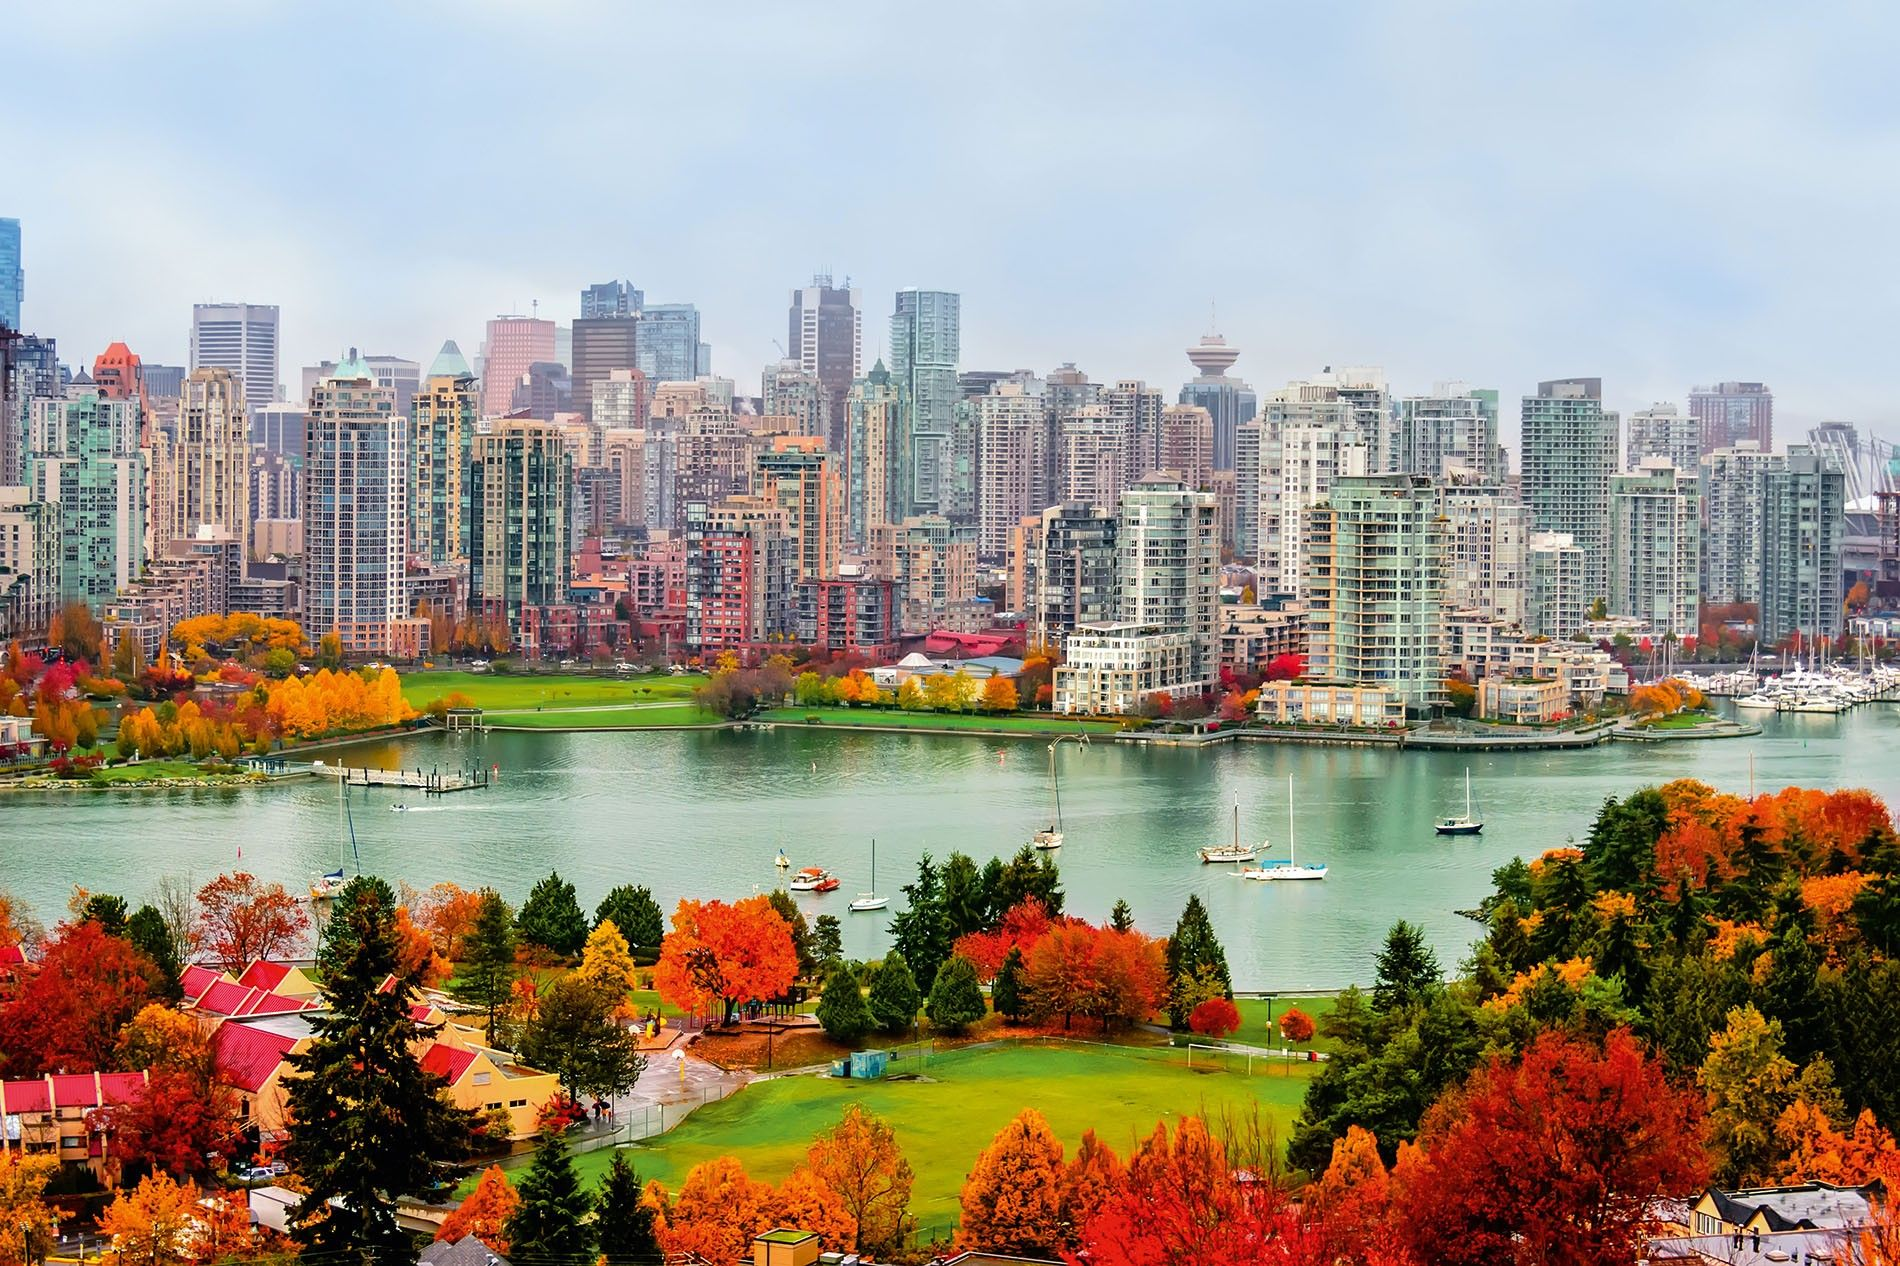 The skyline of Vancouver.